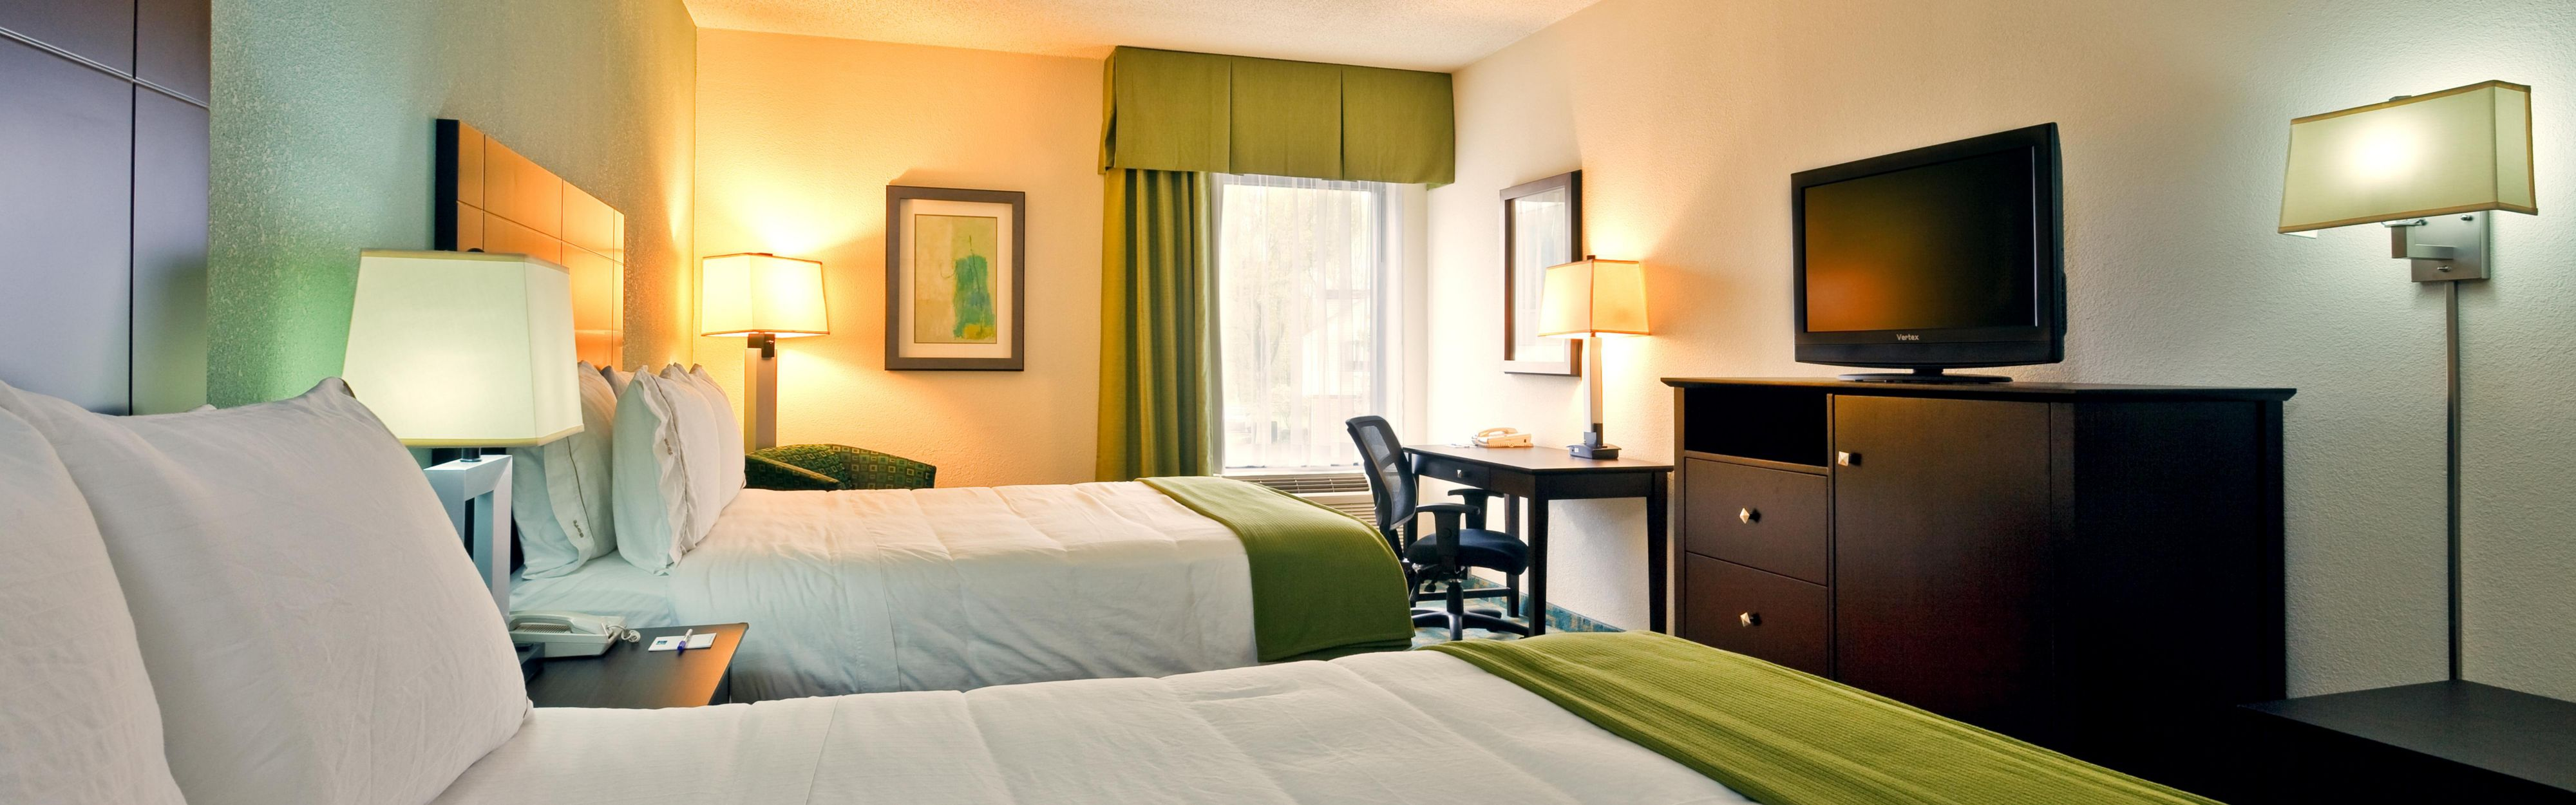 Holiday Inn Express & Suites Brentwood North-Nashville Area image 1